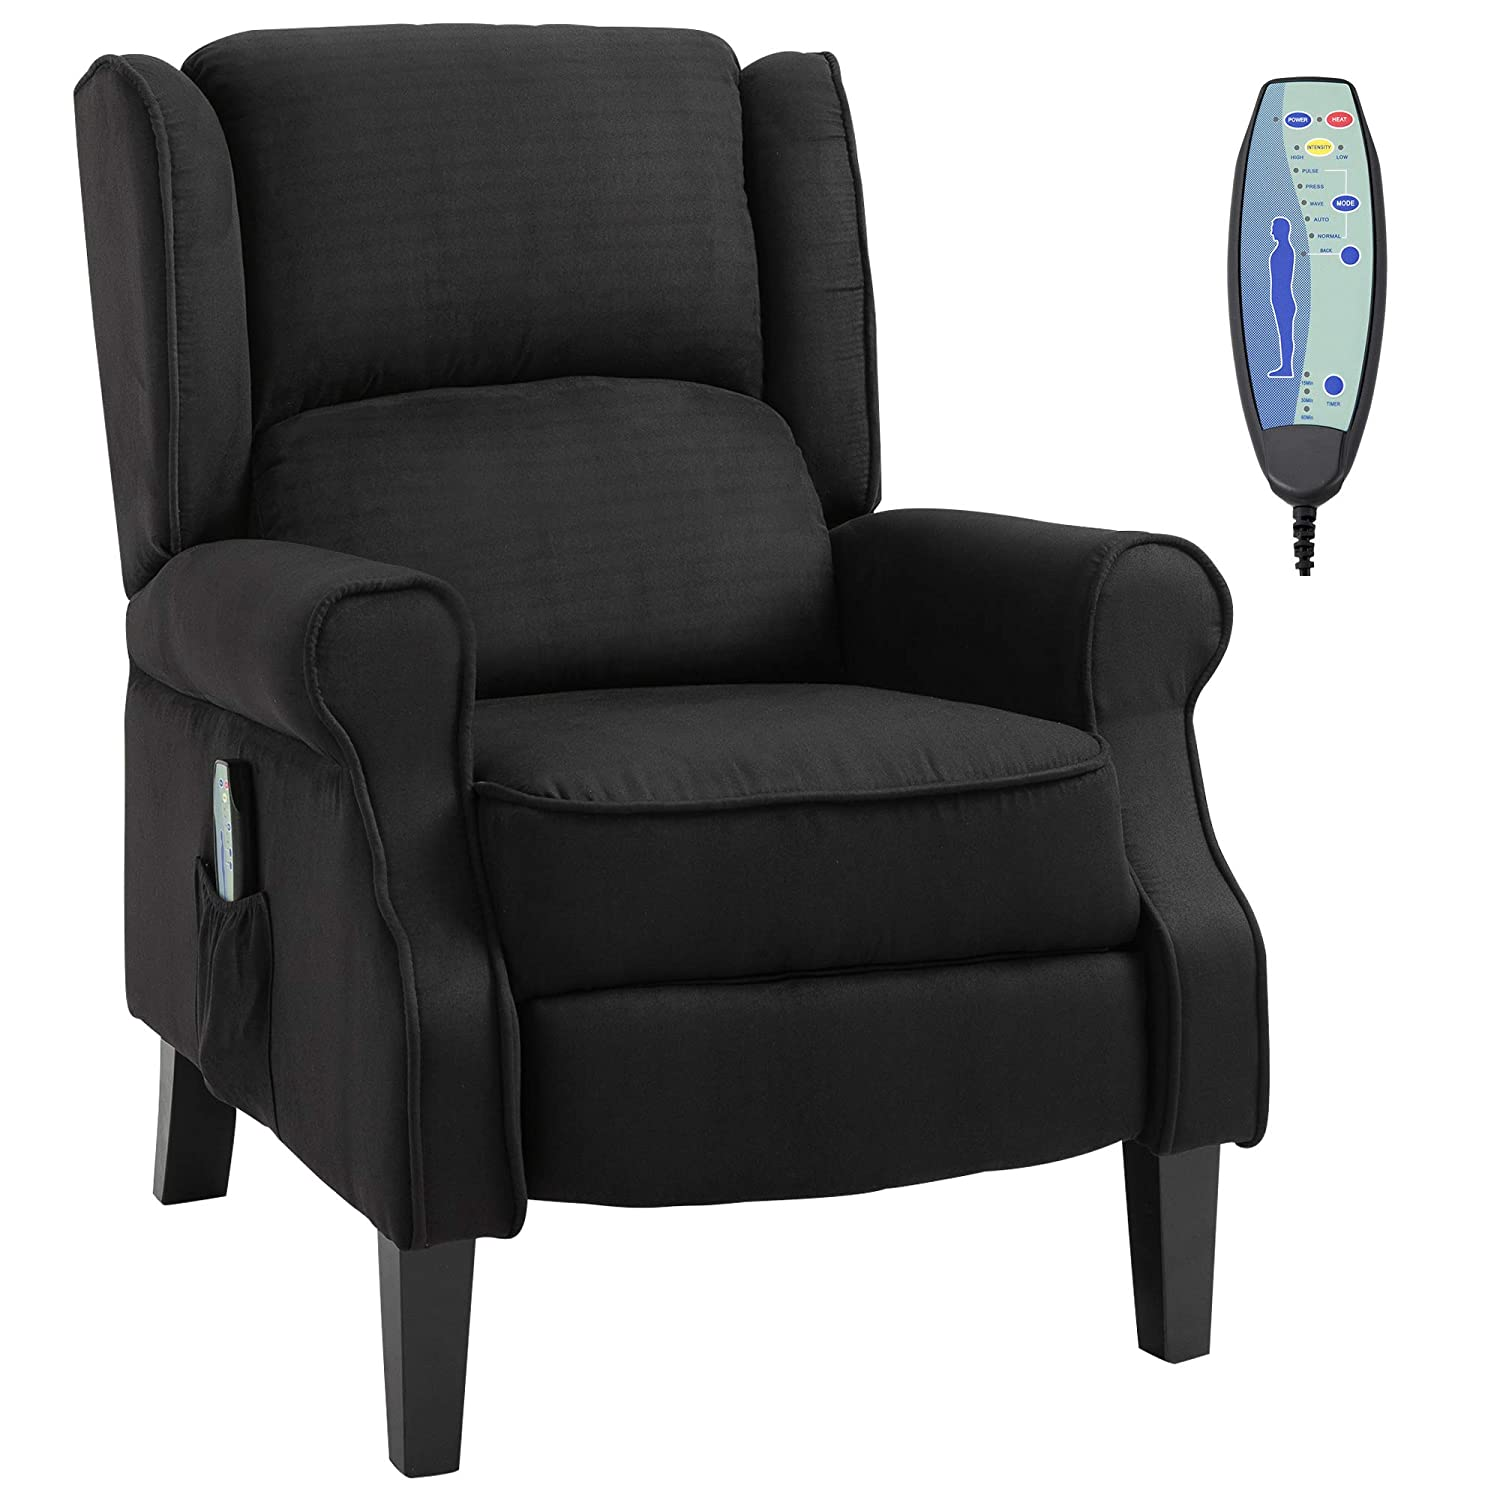 Best Massage Recliner: HOMCOM Wingback Heated Vibrating and Easily Reclinable Chair.